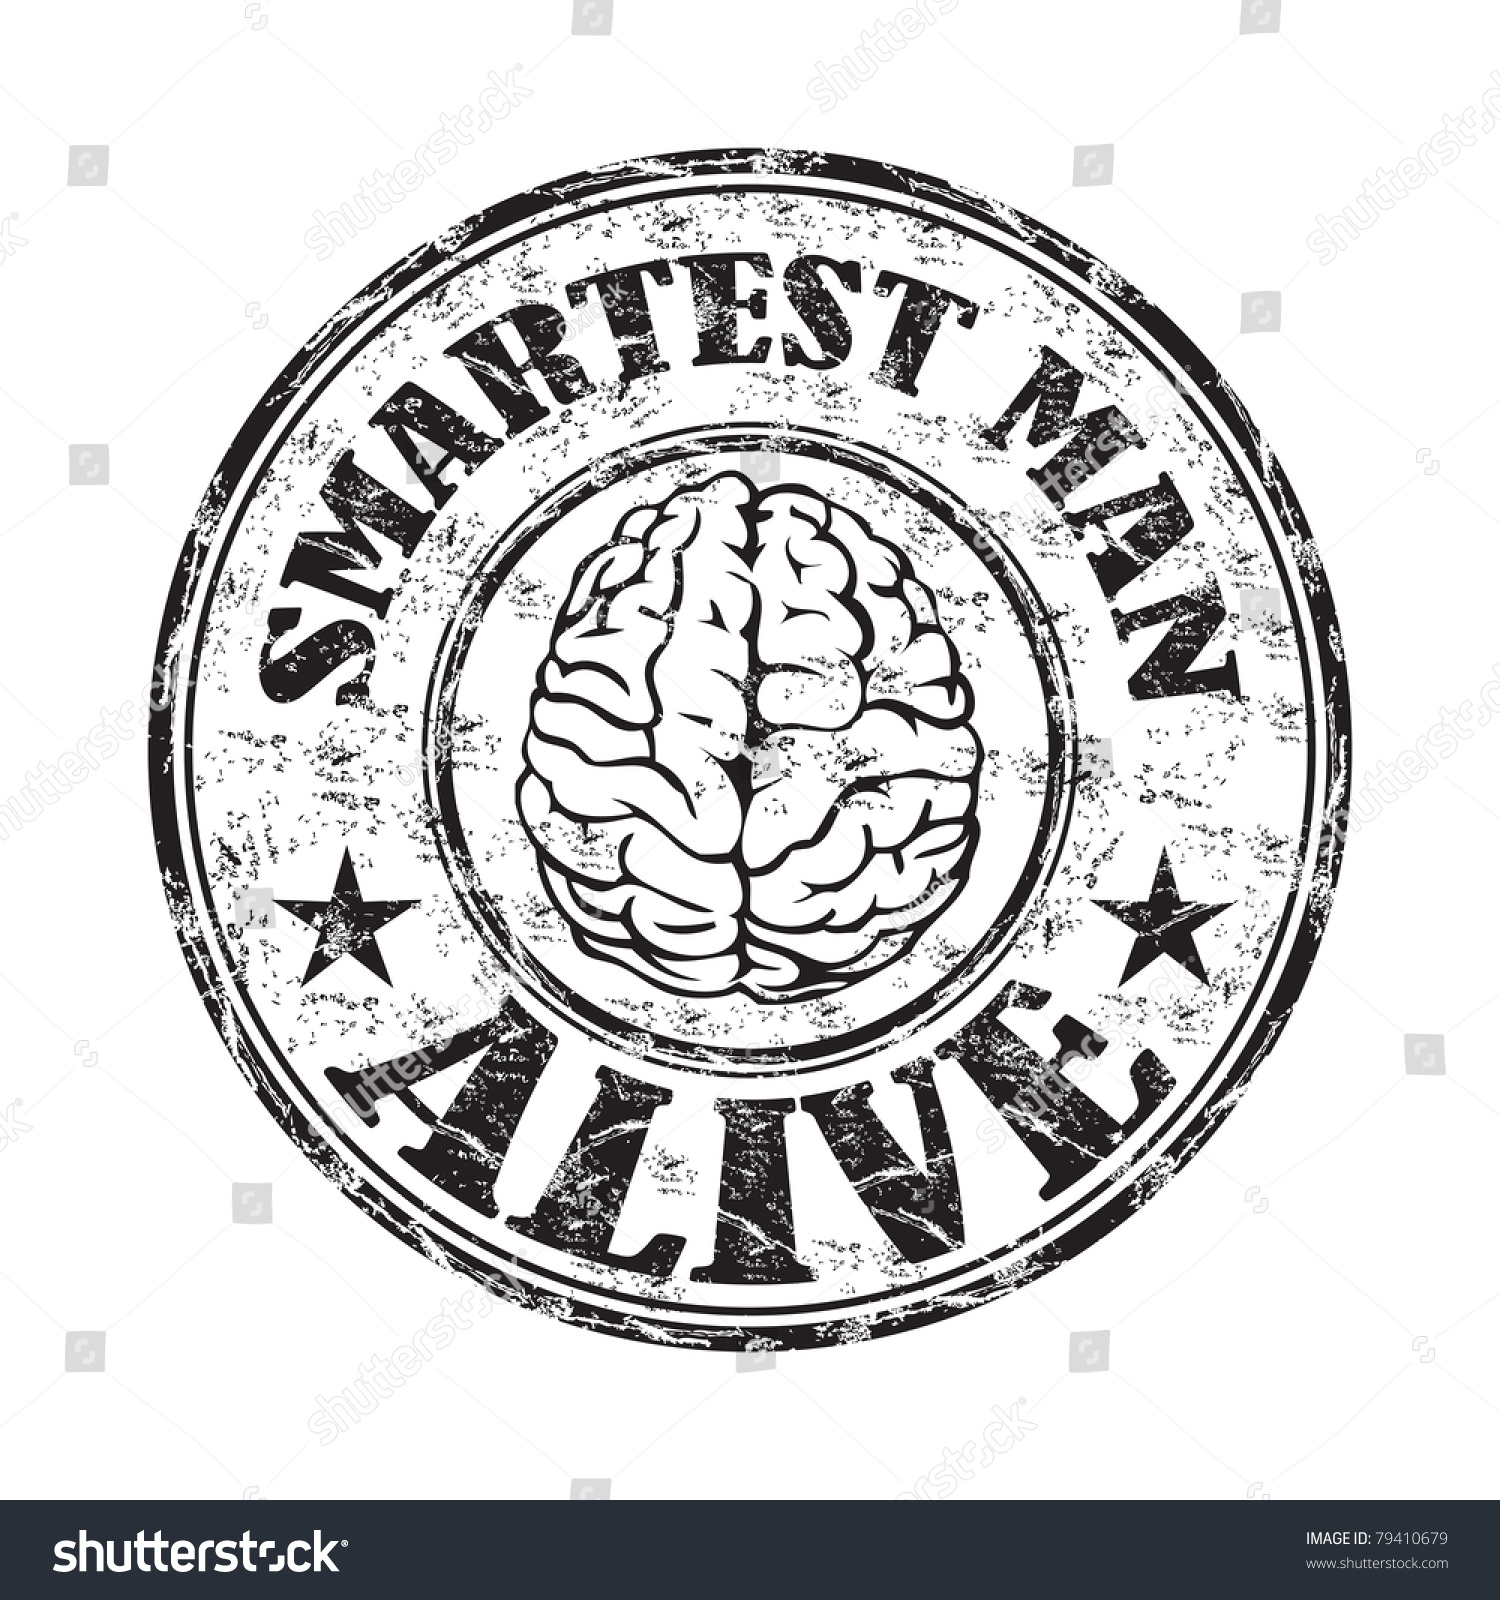 Black grunge rubber stamp brain symbol stock vector 79410679 black grunge rubber stamp with a brain symbol and the text smartest man alive written inside biocorpaavc Images